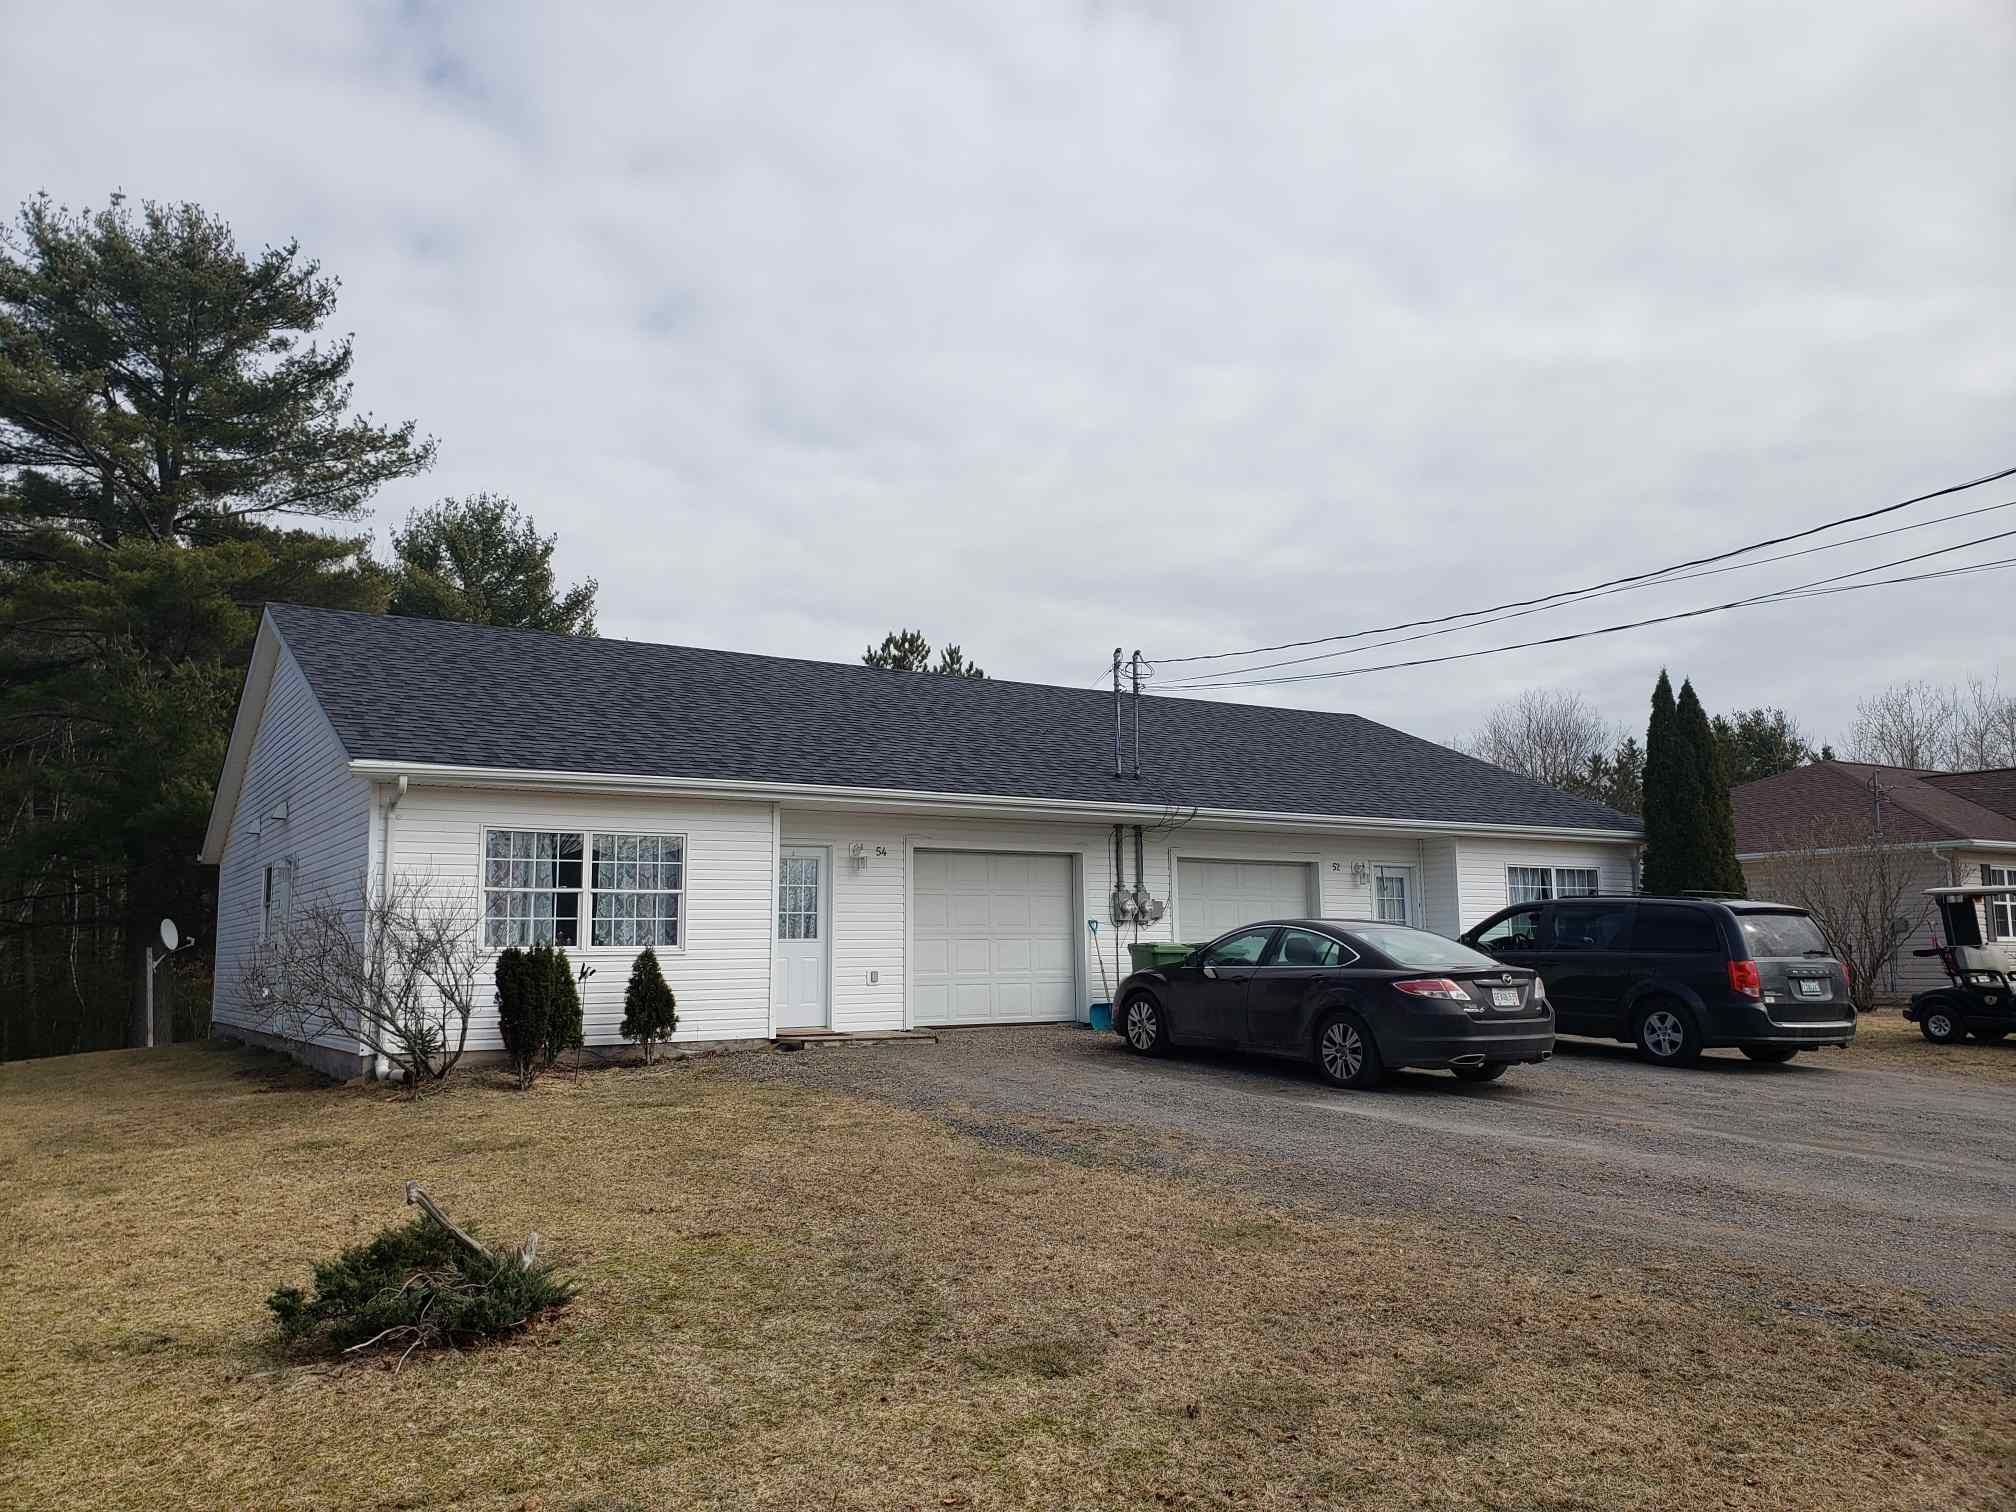 Main Photo: 52 & 54 Rand Street in Cambridge: 404-Kings County Multi-Family for sale (Annapolis Valley)  : MLS®# 202104810